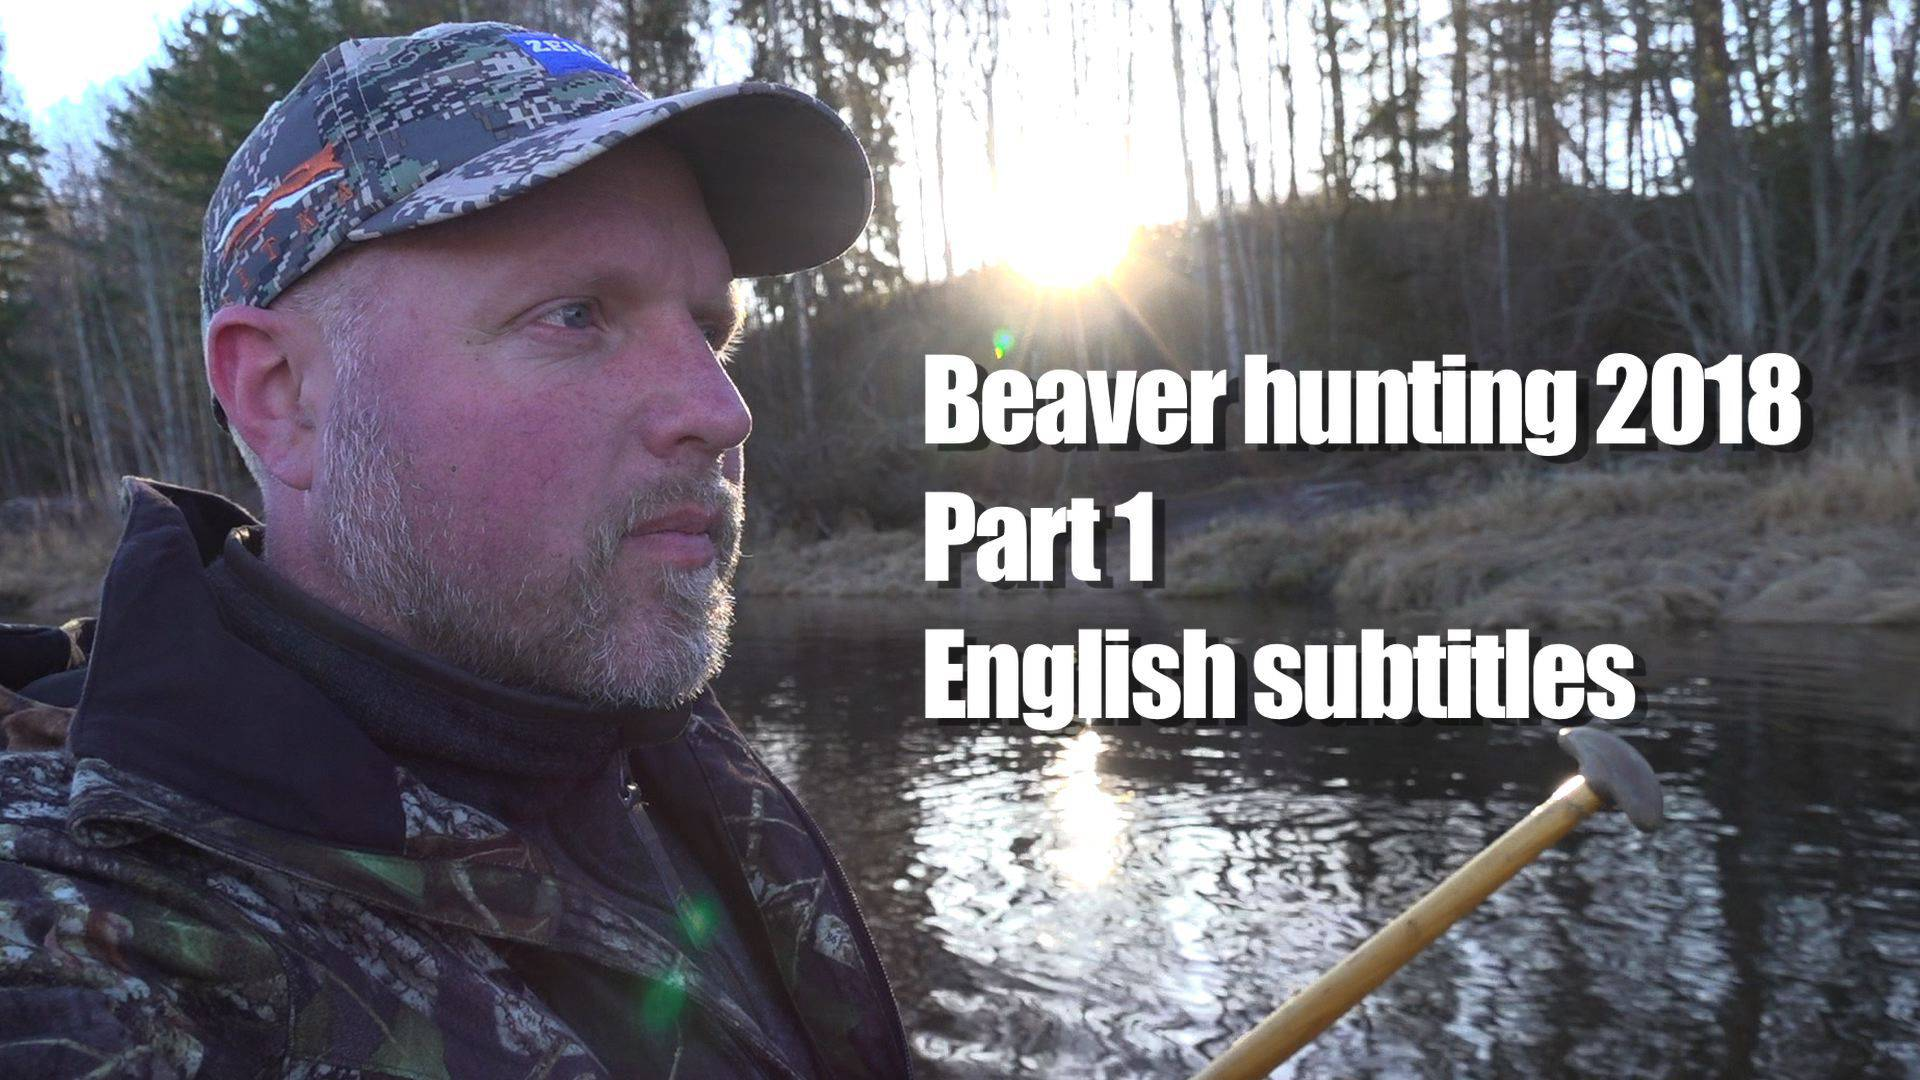 Beaver hunting 2018 Part 1 by Kristoffer Clausen